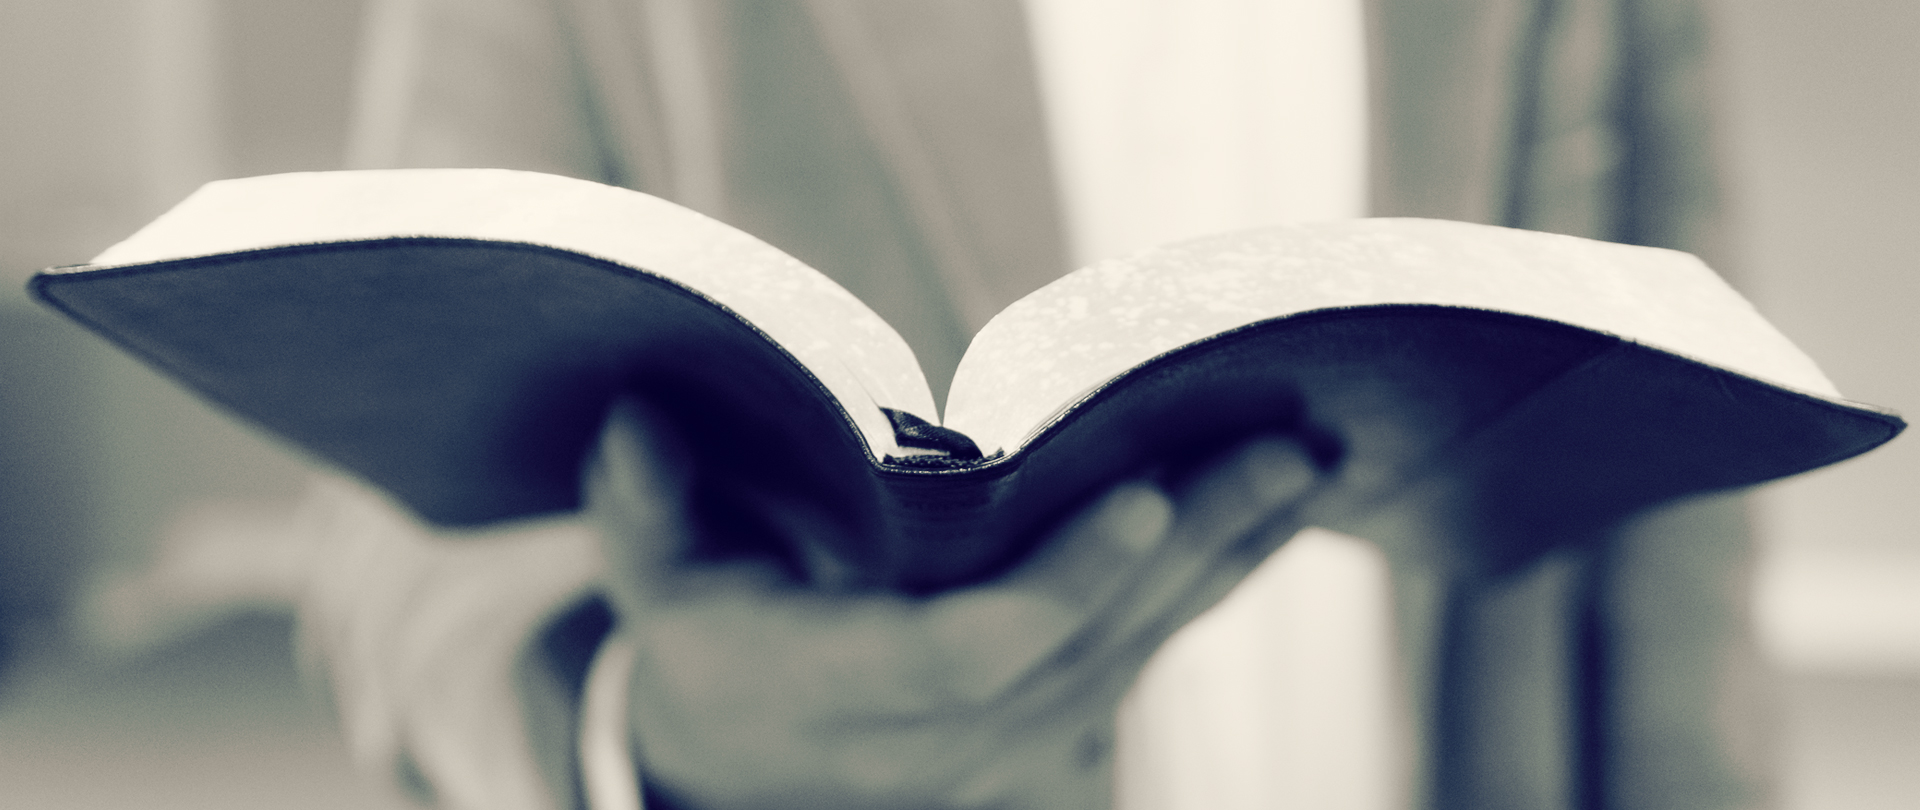 Beliefs